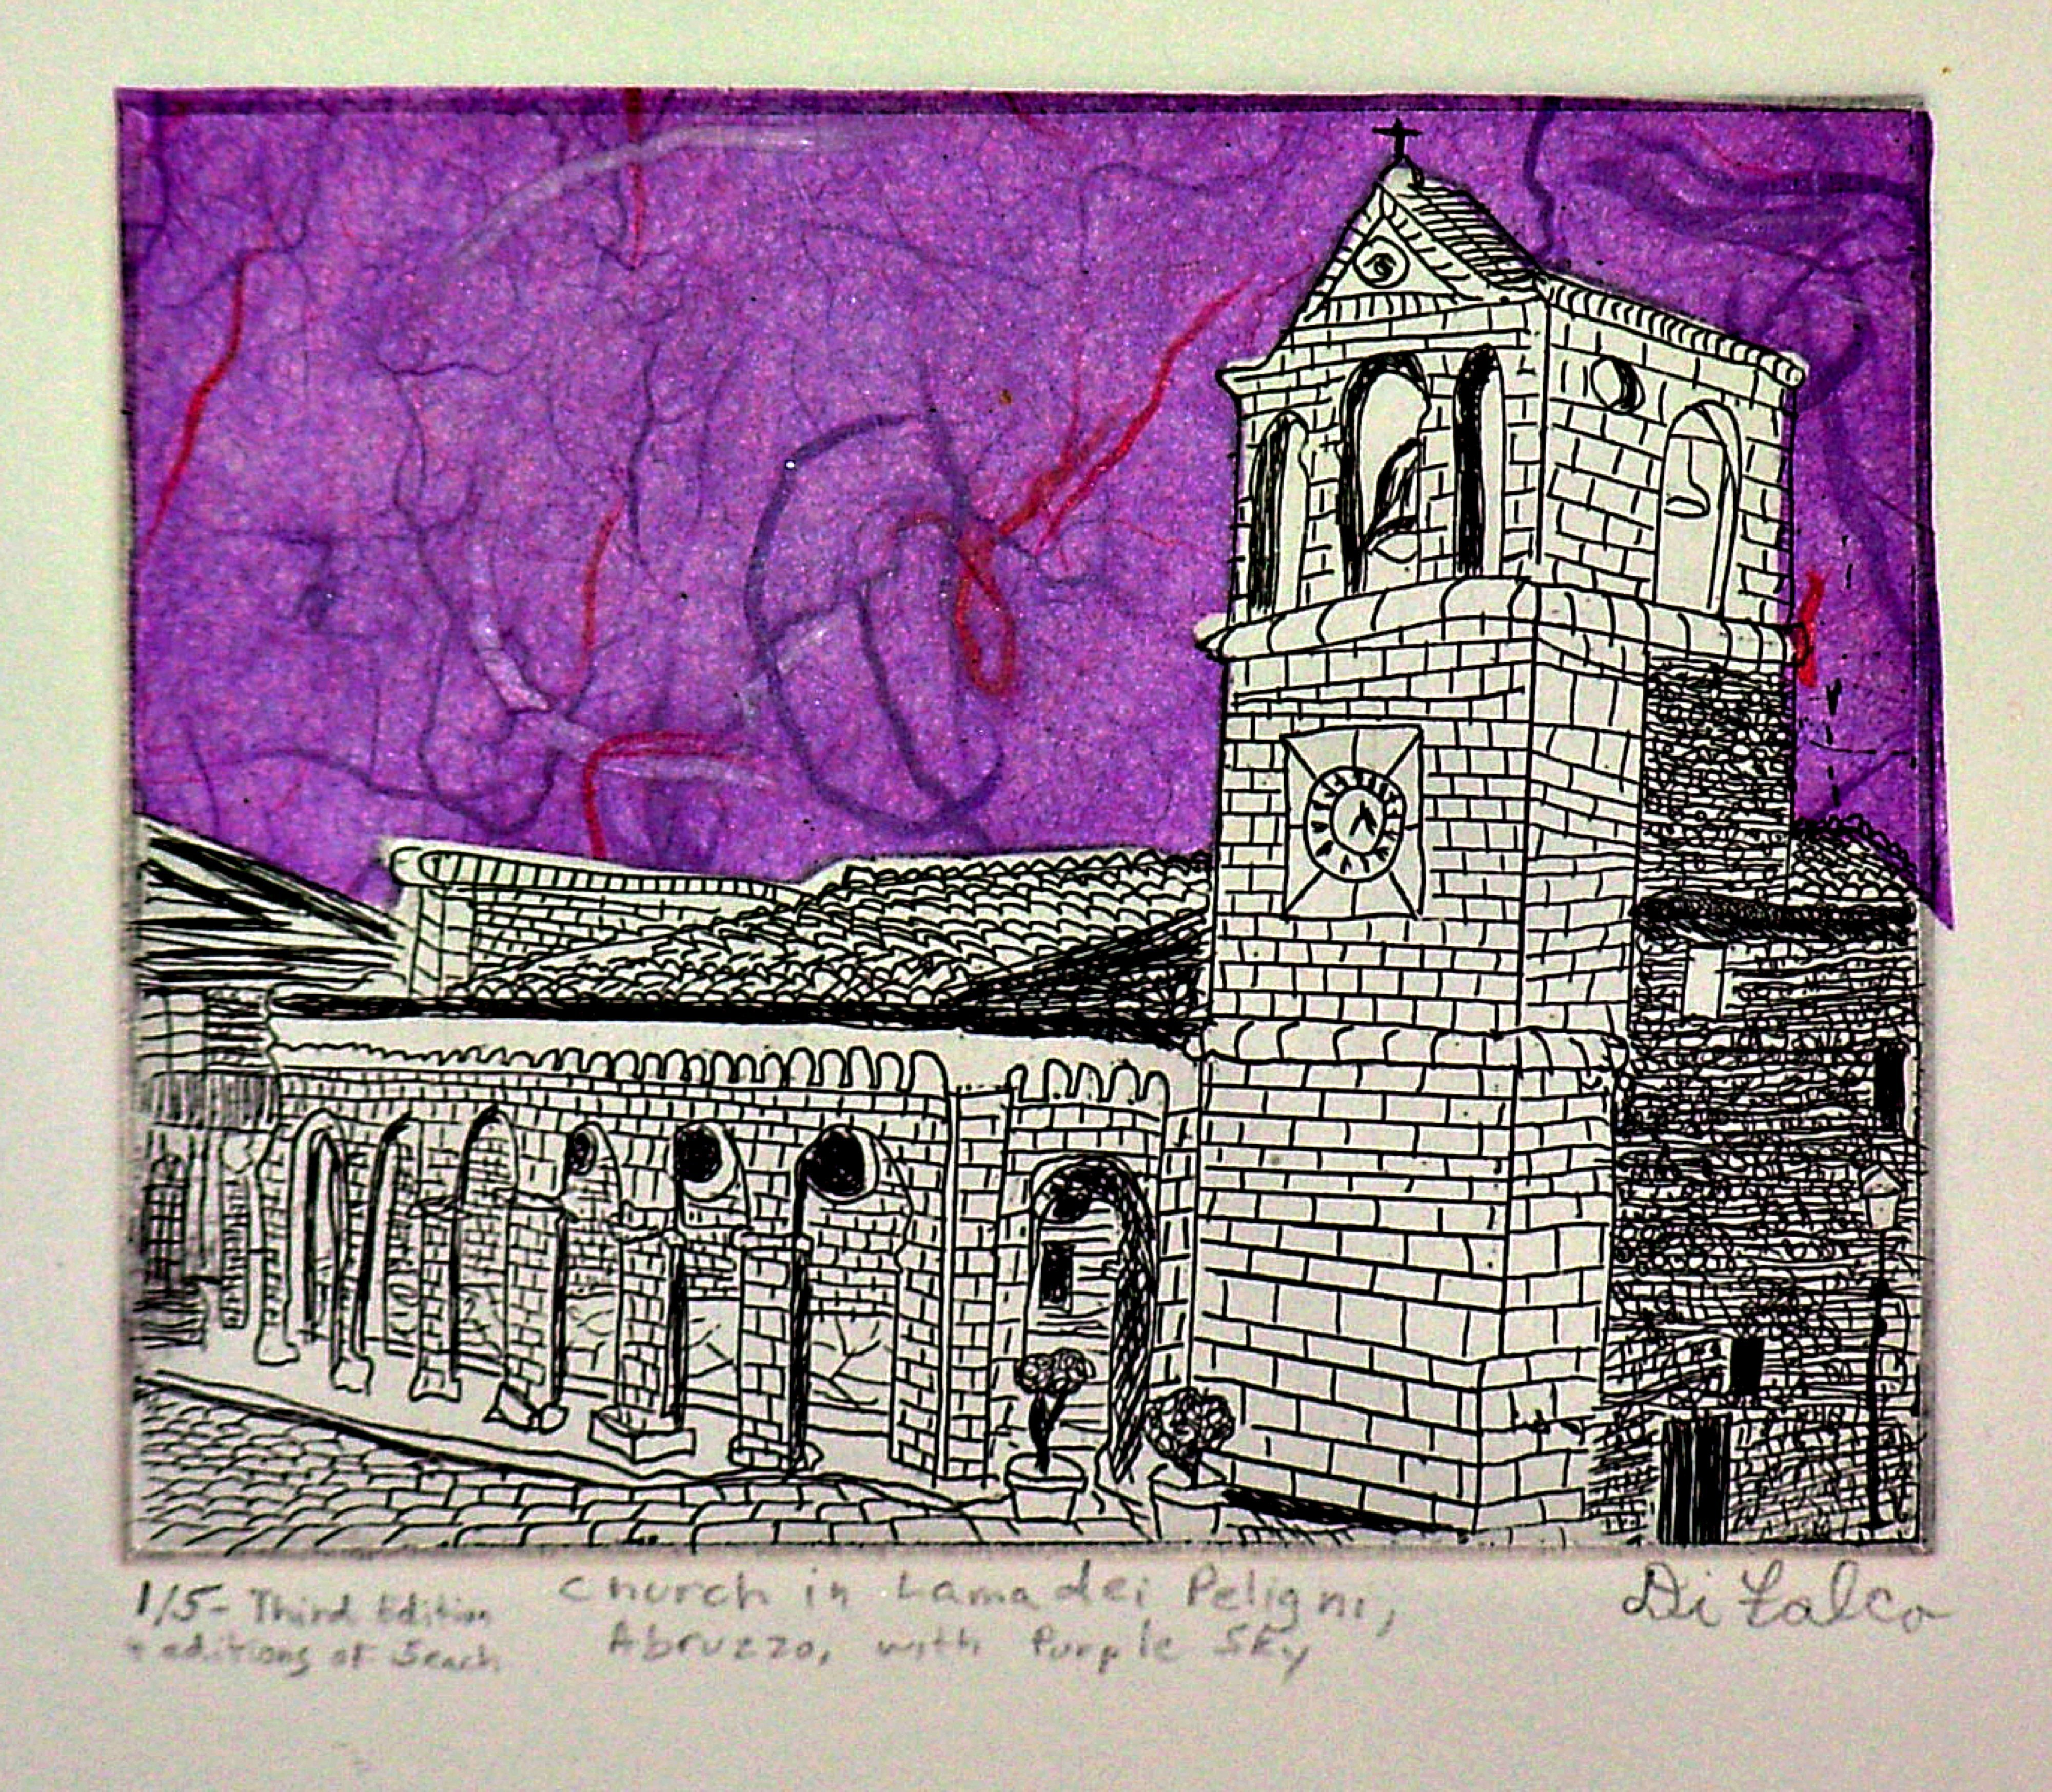 Jerry  Di Falco: 'Church In Abruzzo', 2010 Mixed Media, Political. FULL TITLE IS, Church In Lama dei Peligni Abruzzo with Purple Sky. I hand printed and published this edition at The Center for Works on Paper in Philadelphia, Pennsylvania, USA. Please note that this etching is shipped to the collector without a frame or mat. This keeps the price low ...